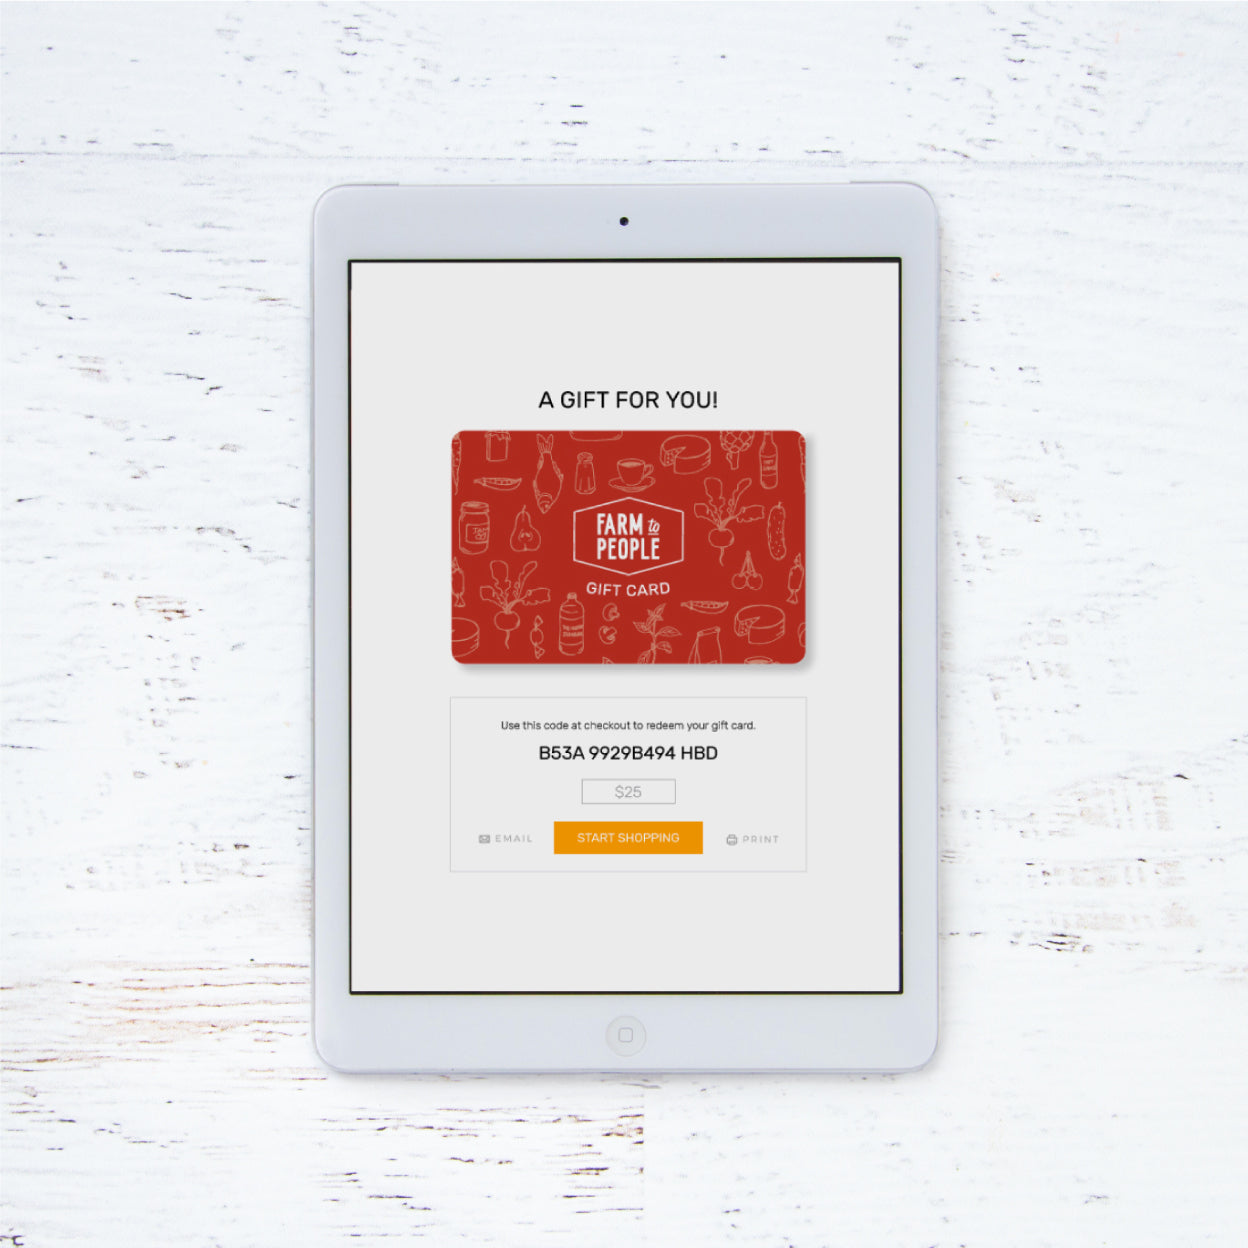 E Gift Card Farm To People Small Batch Artisanal Food And Gift